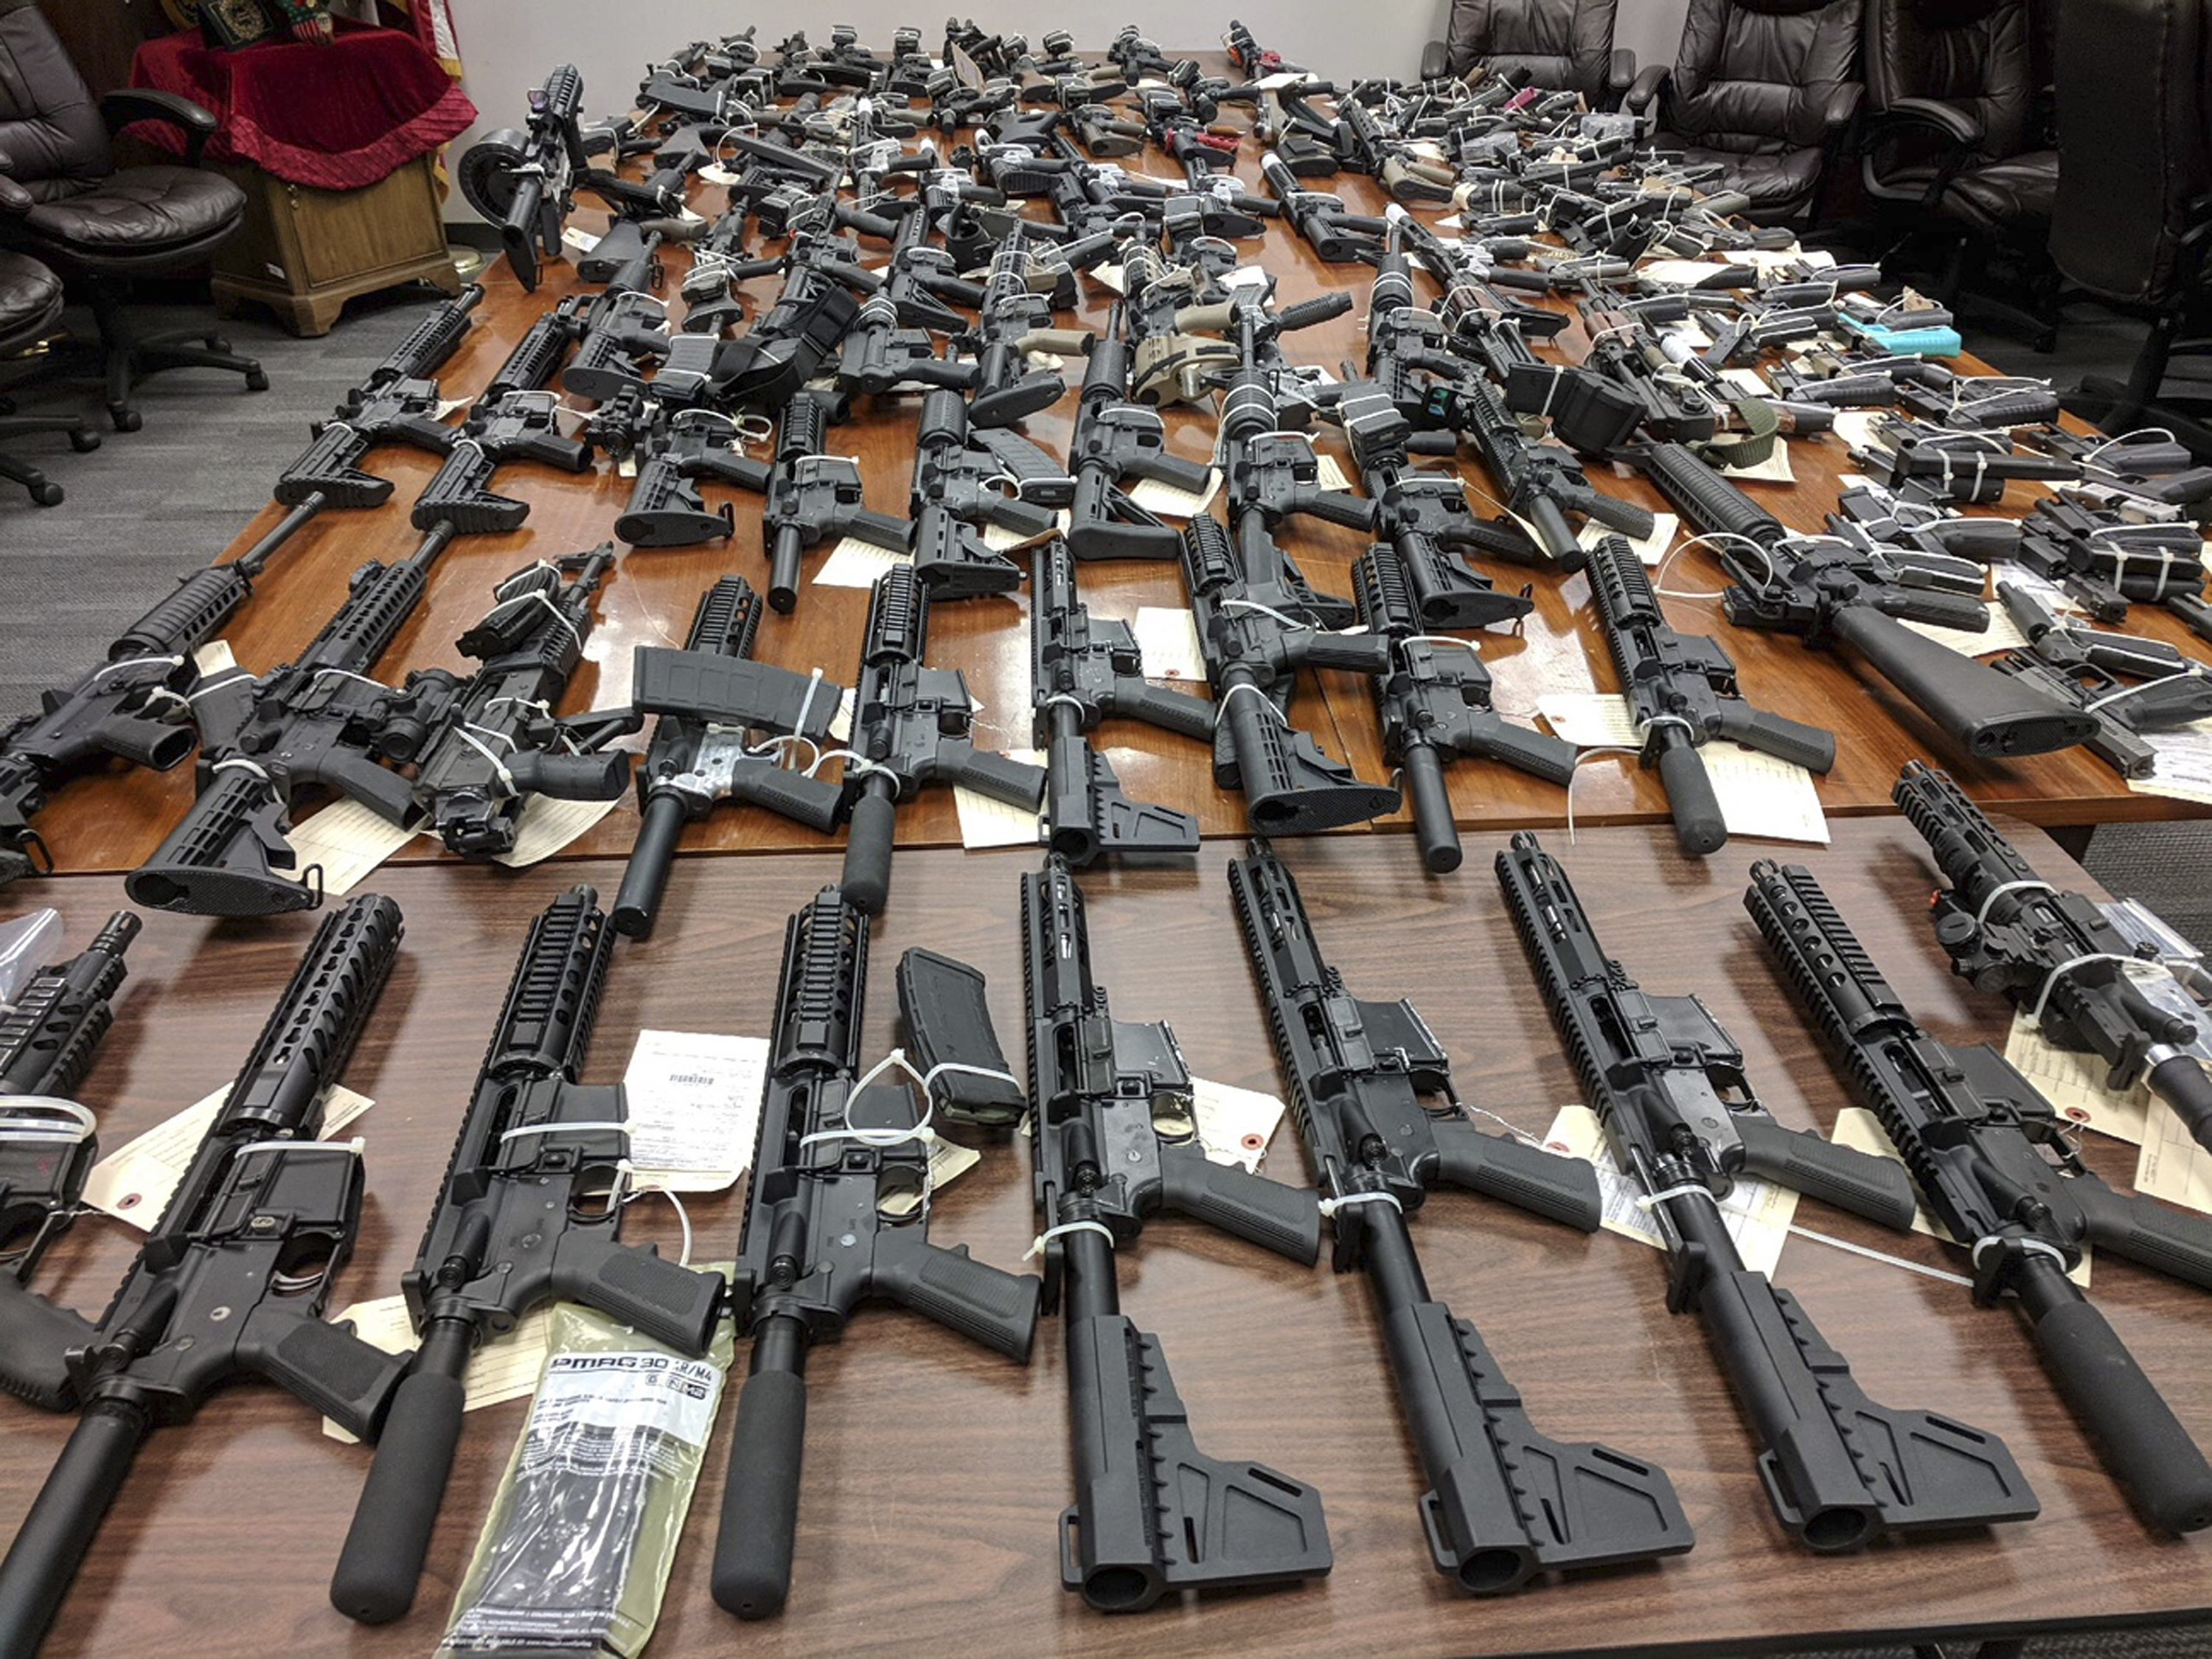 Firearms No. 2 cause for death of children, teens in US